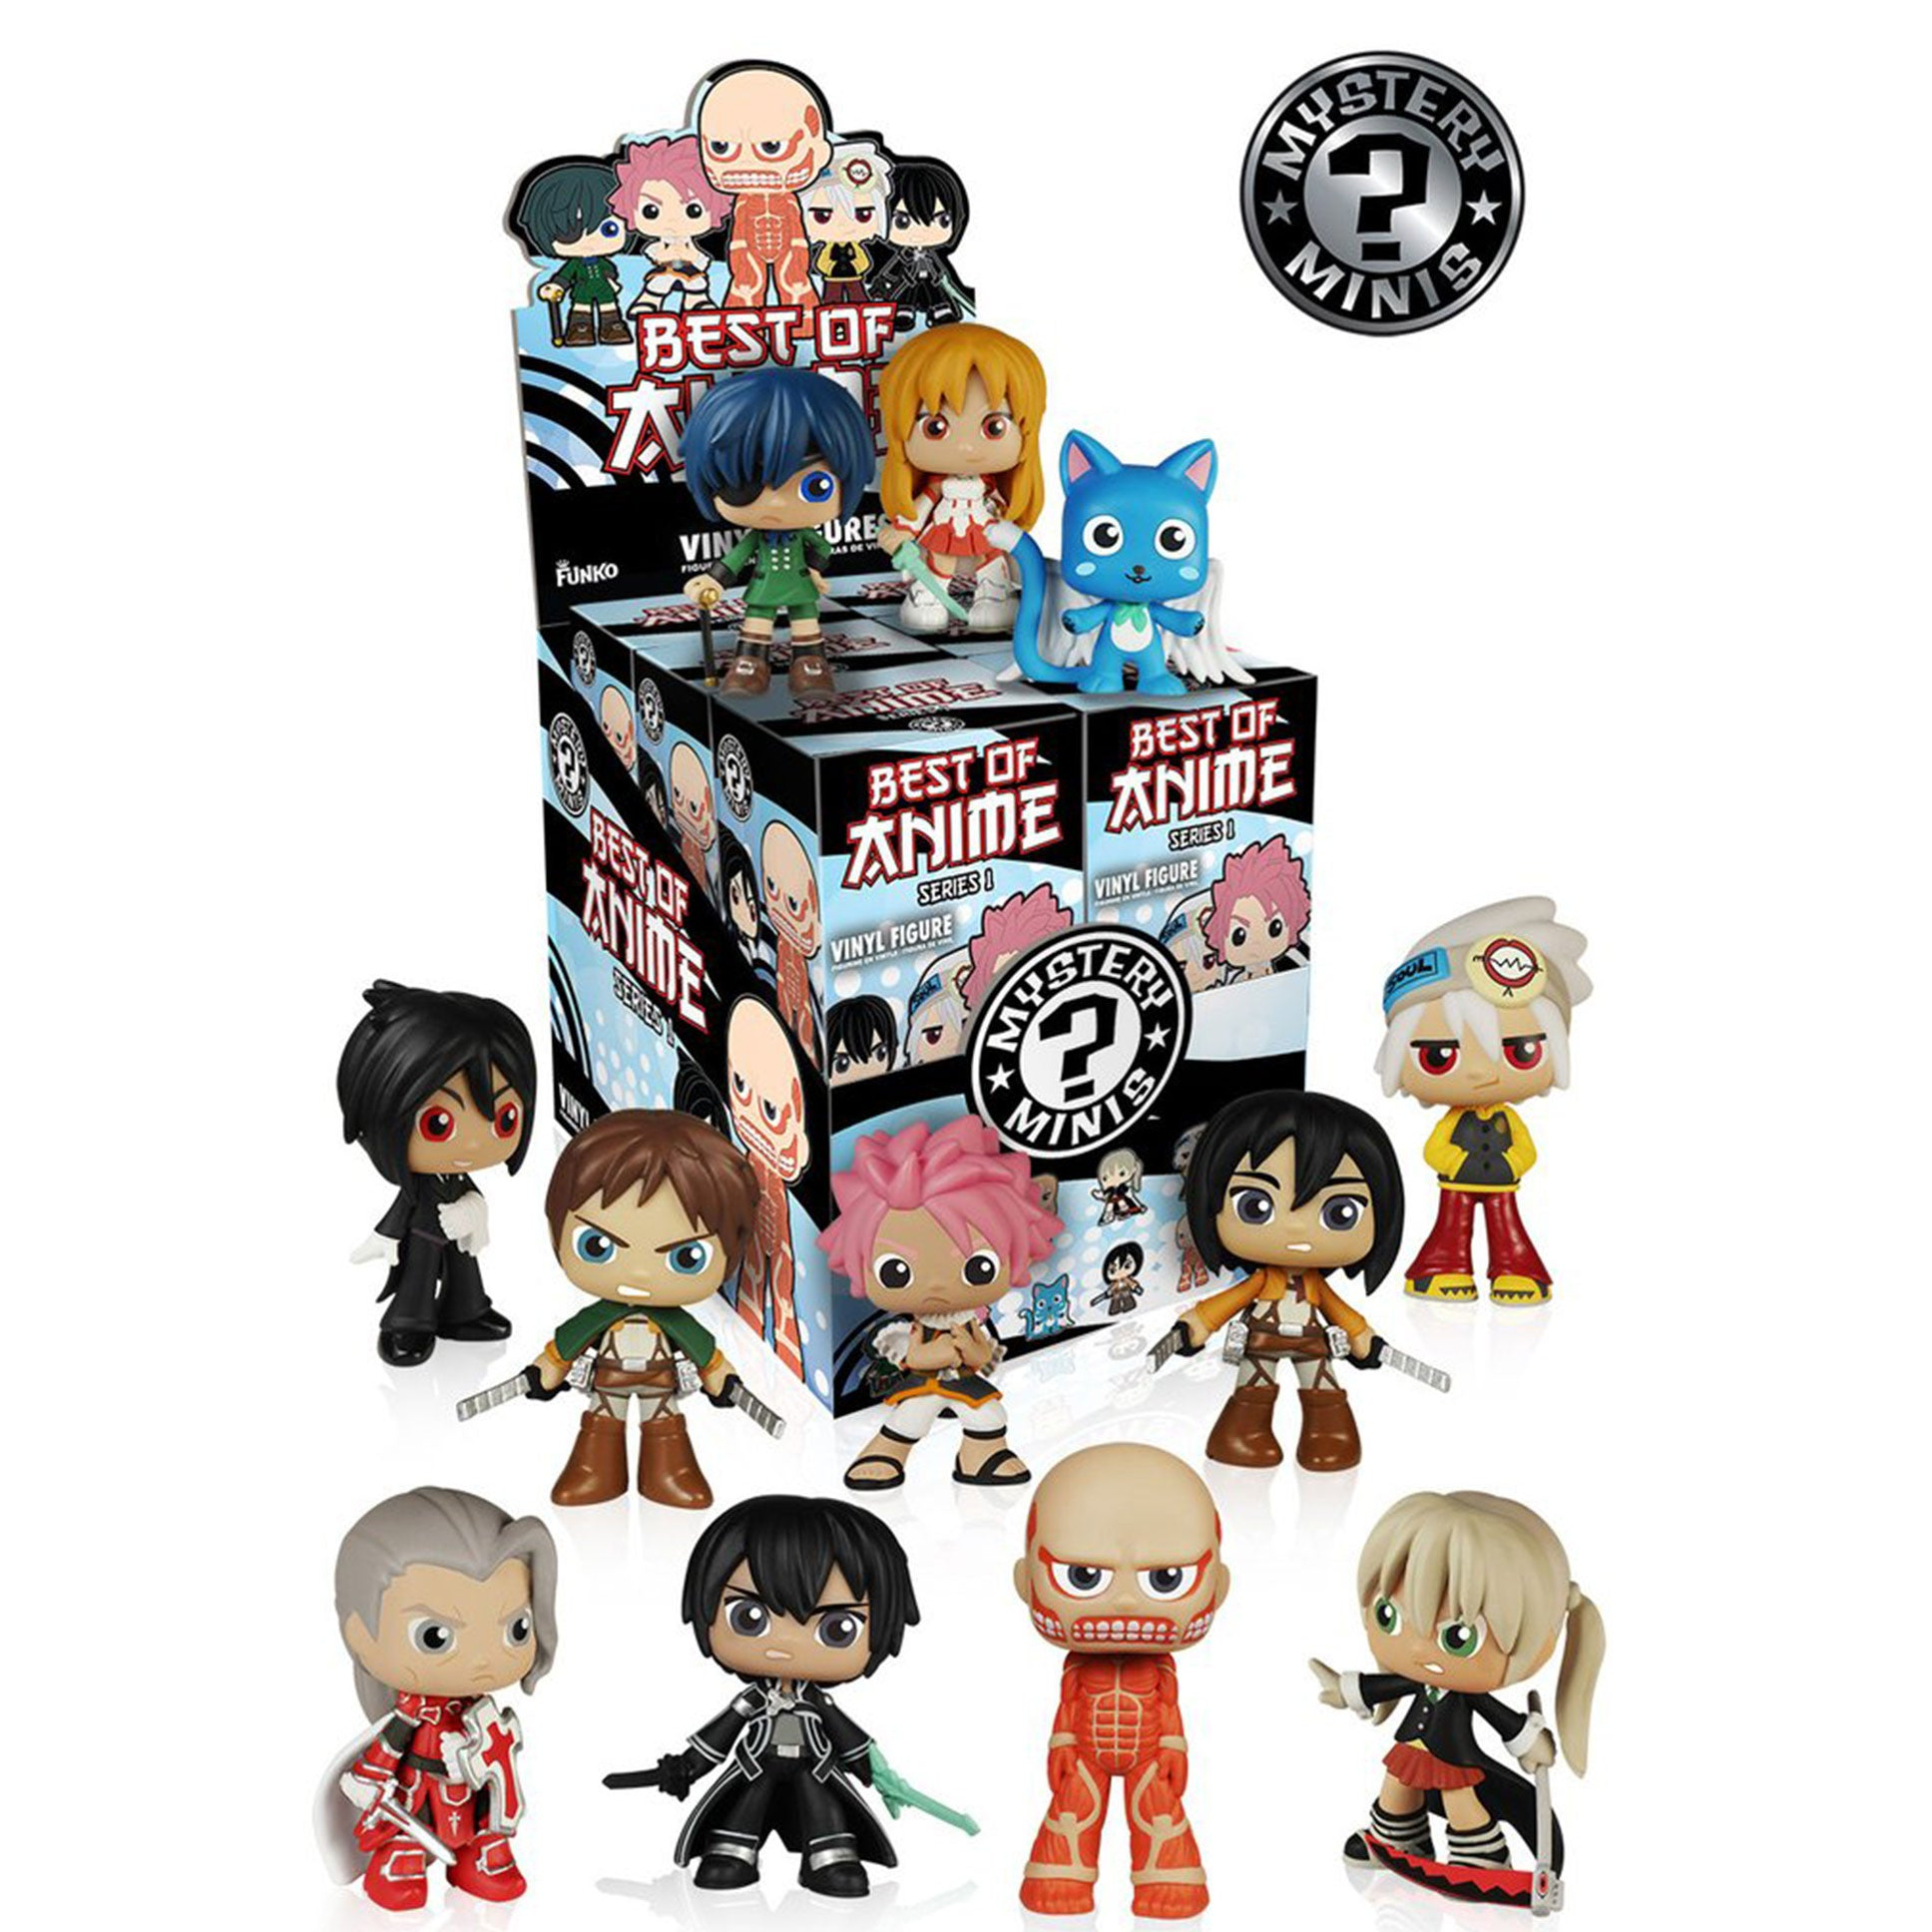 anime of random plush blinds ebay toys mini gurumitz gintama blind picture s p box